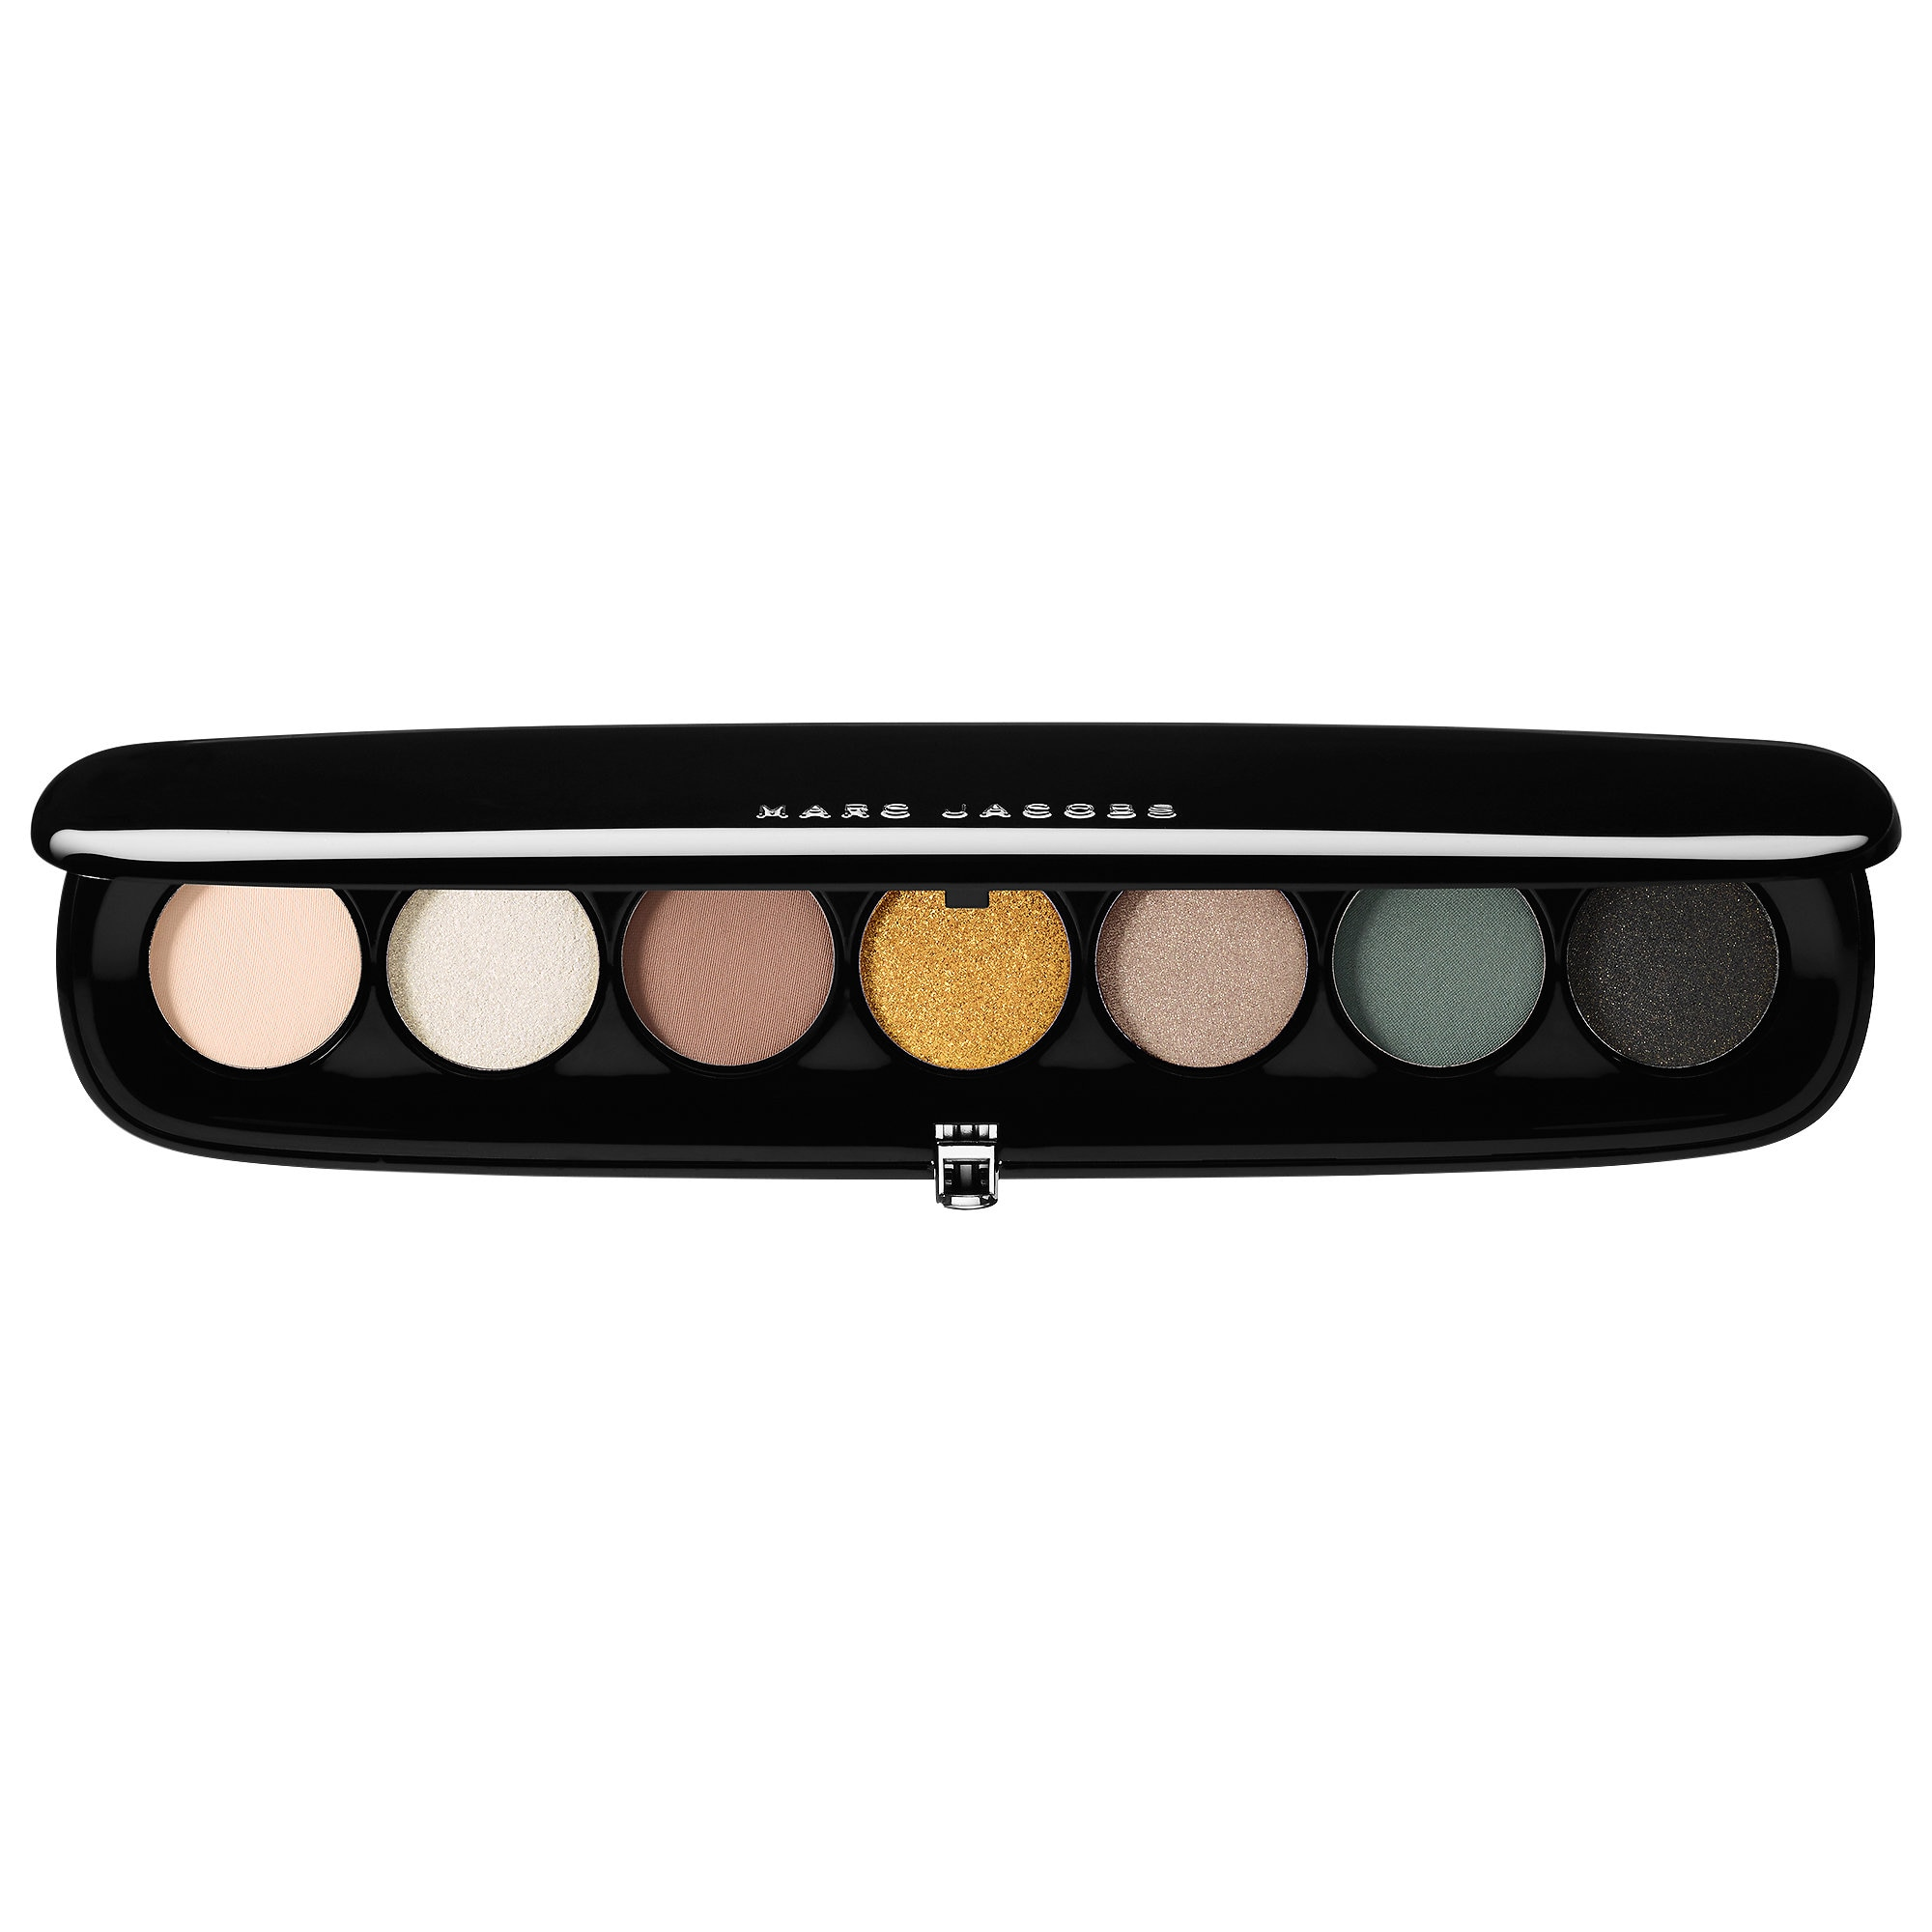 EYE-CONIC MULTI-FINISH EYESHADOW PALETTE